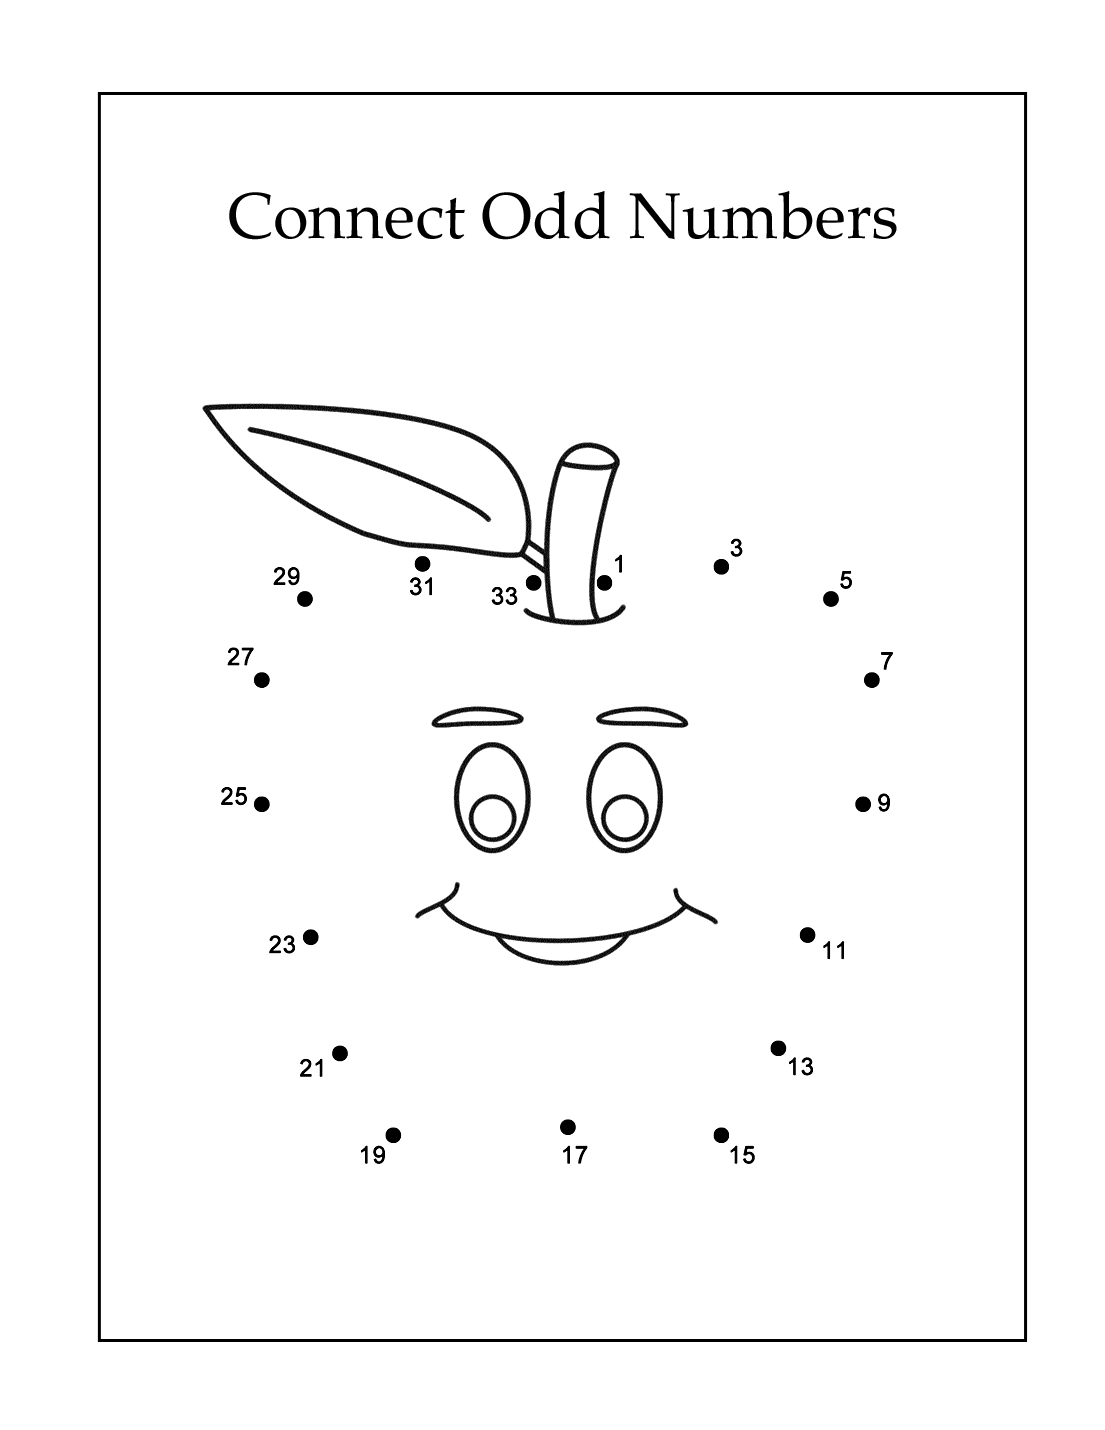 Connect Odd Numbers